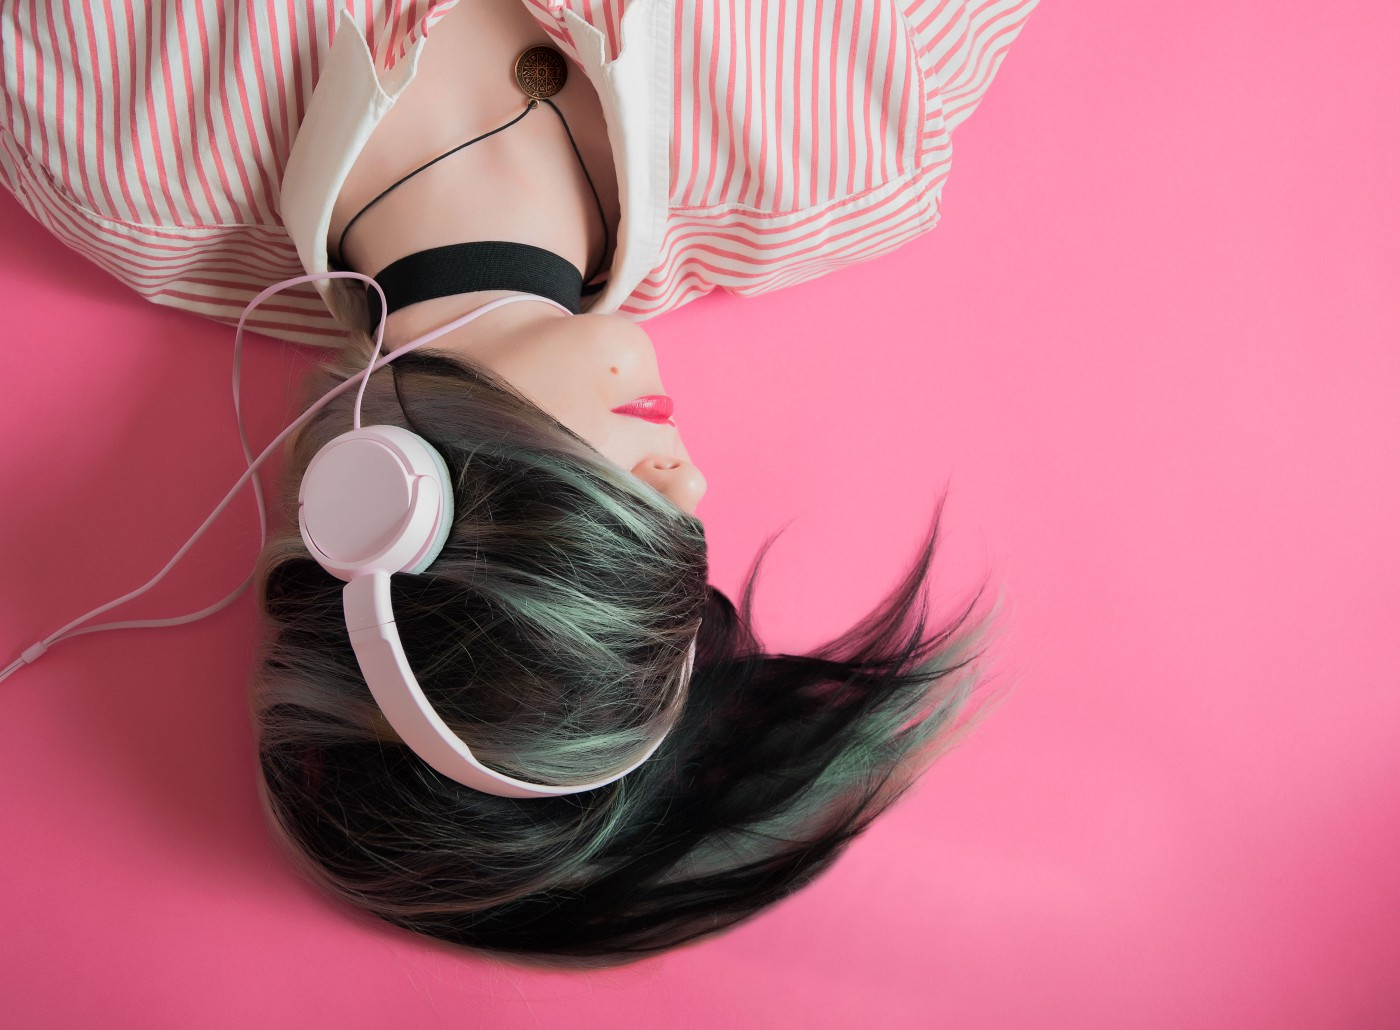 Woman with headphones on and hair hiding hair face lies on her back, head turned sideways